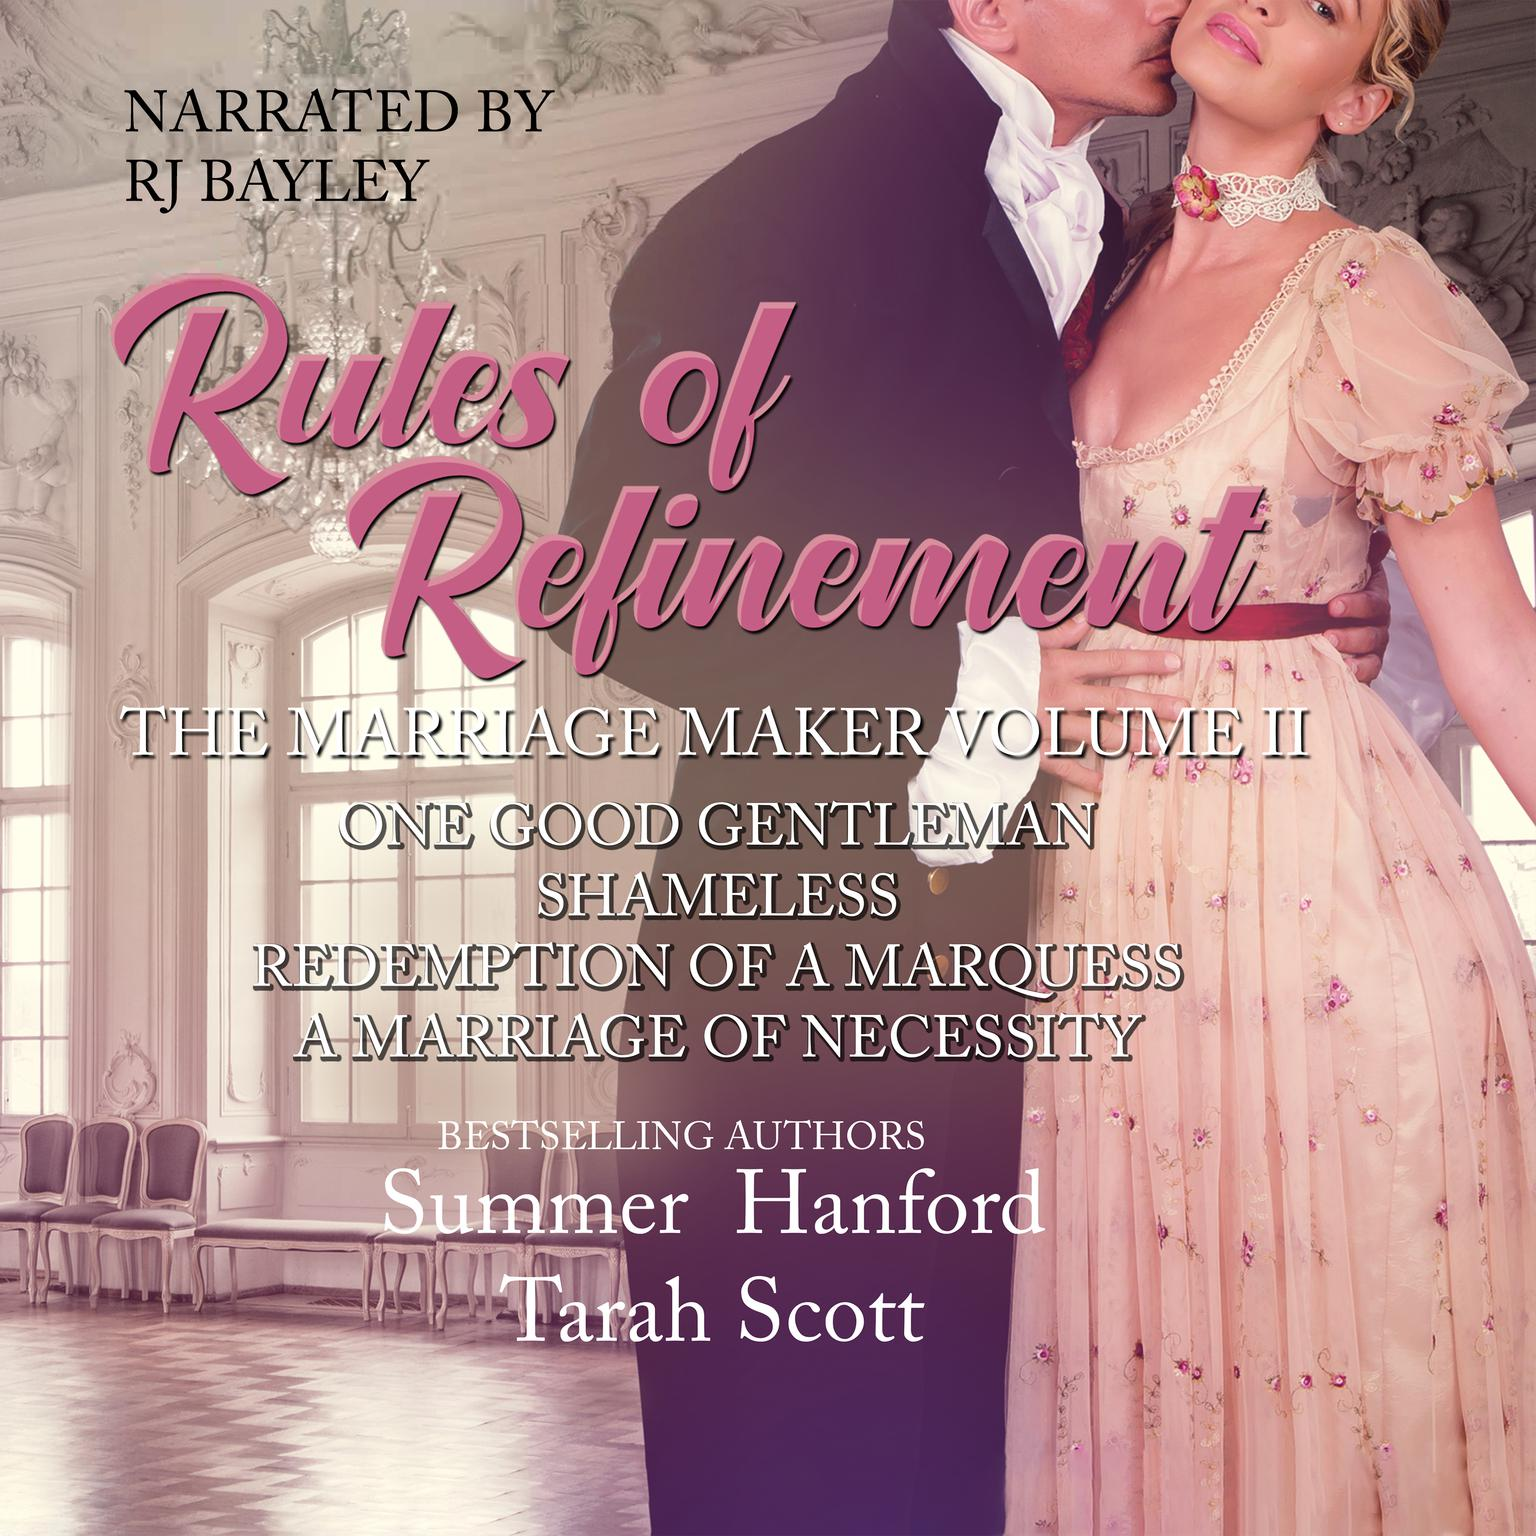 Printable The Marriage Maker, Vol. 2: One Good Gentleman, Shameless, Redemption of a Marquess, A Marriage of Necessity Audiobook Cover Art